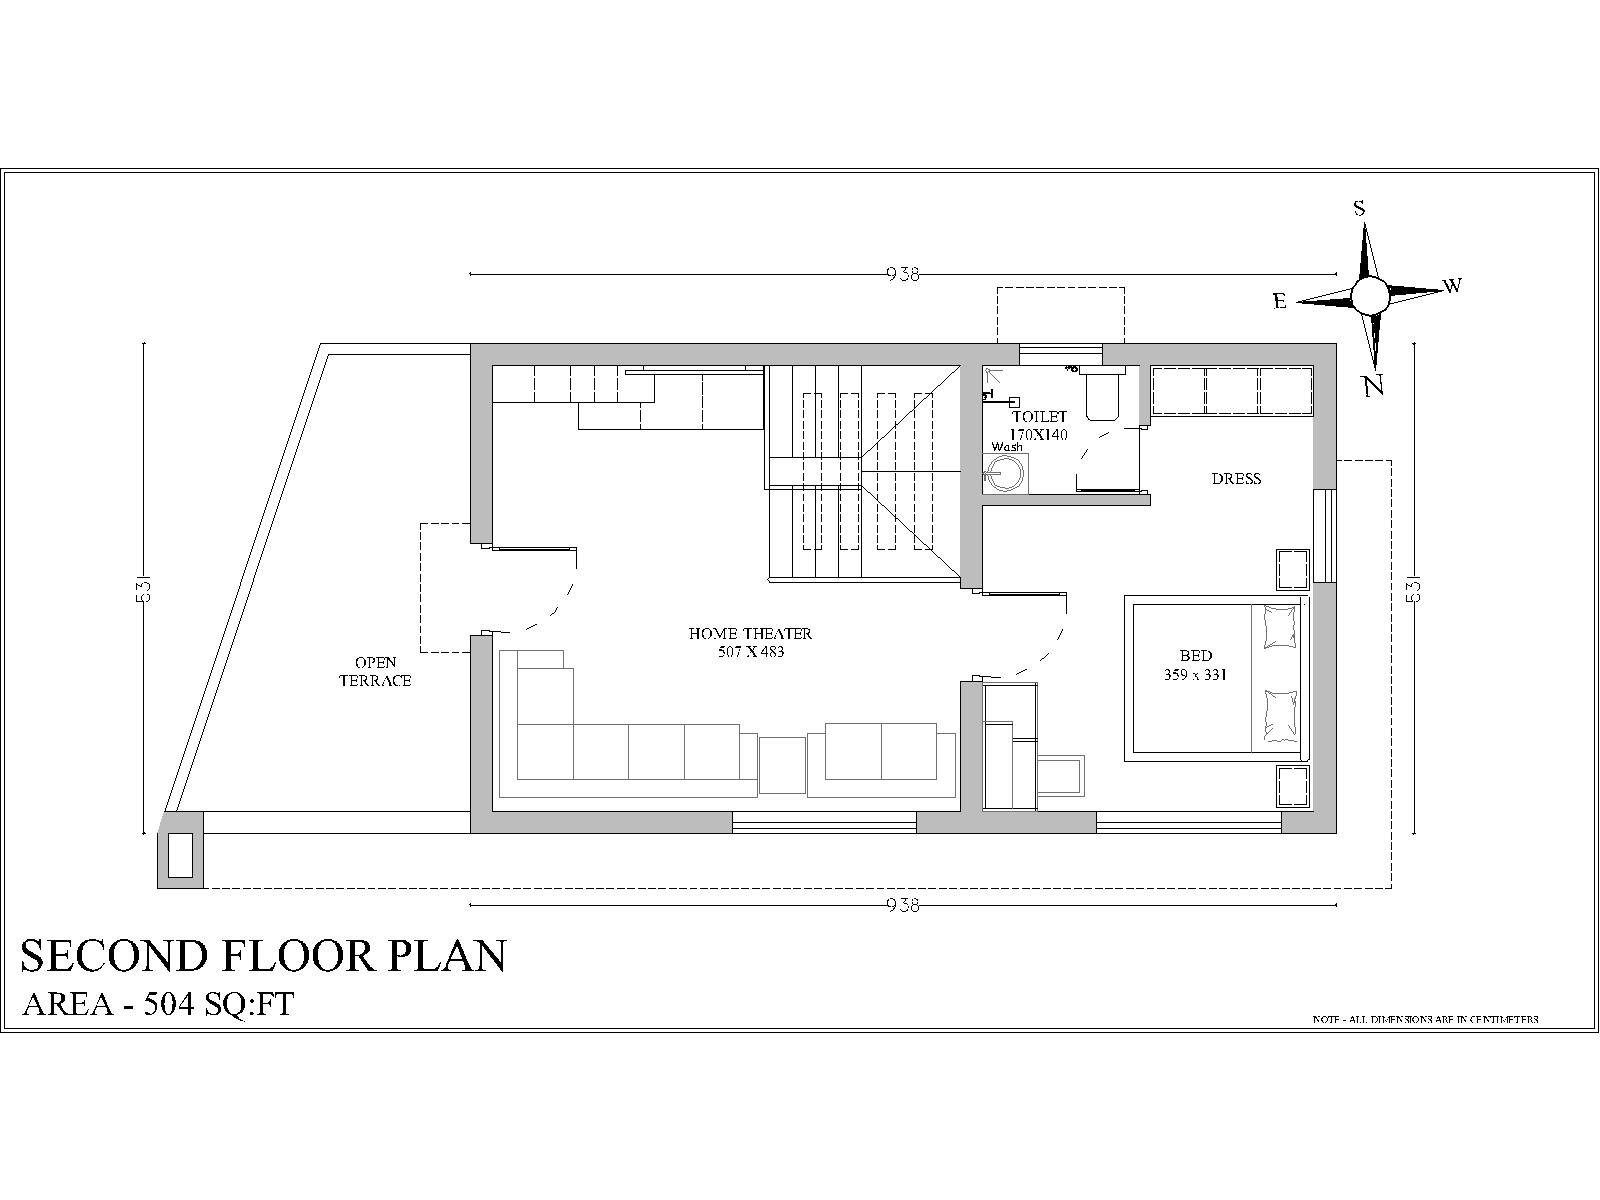 House plans in 3 cents kerala for House plans in 5 cents